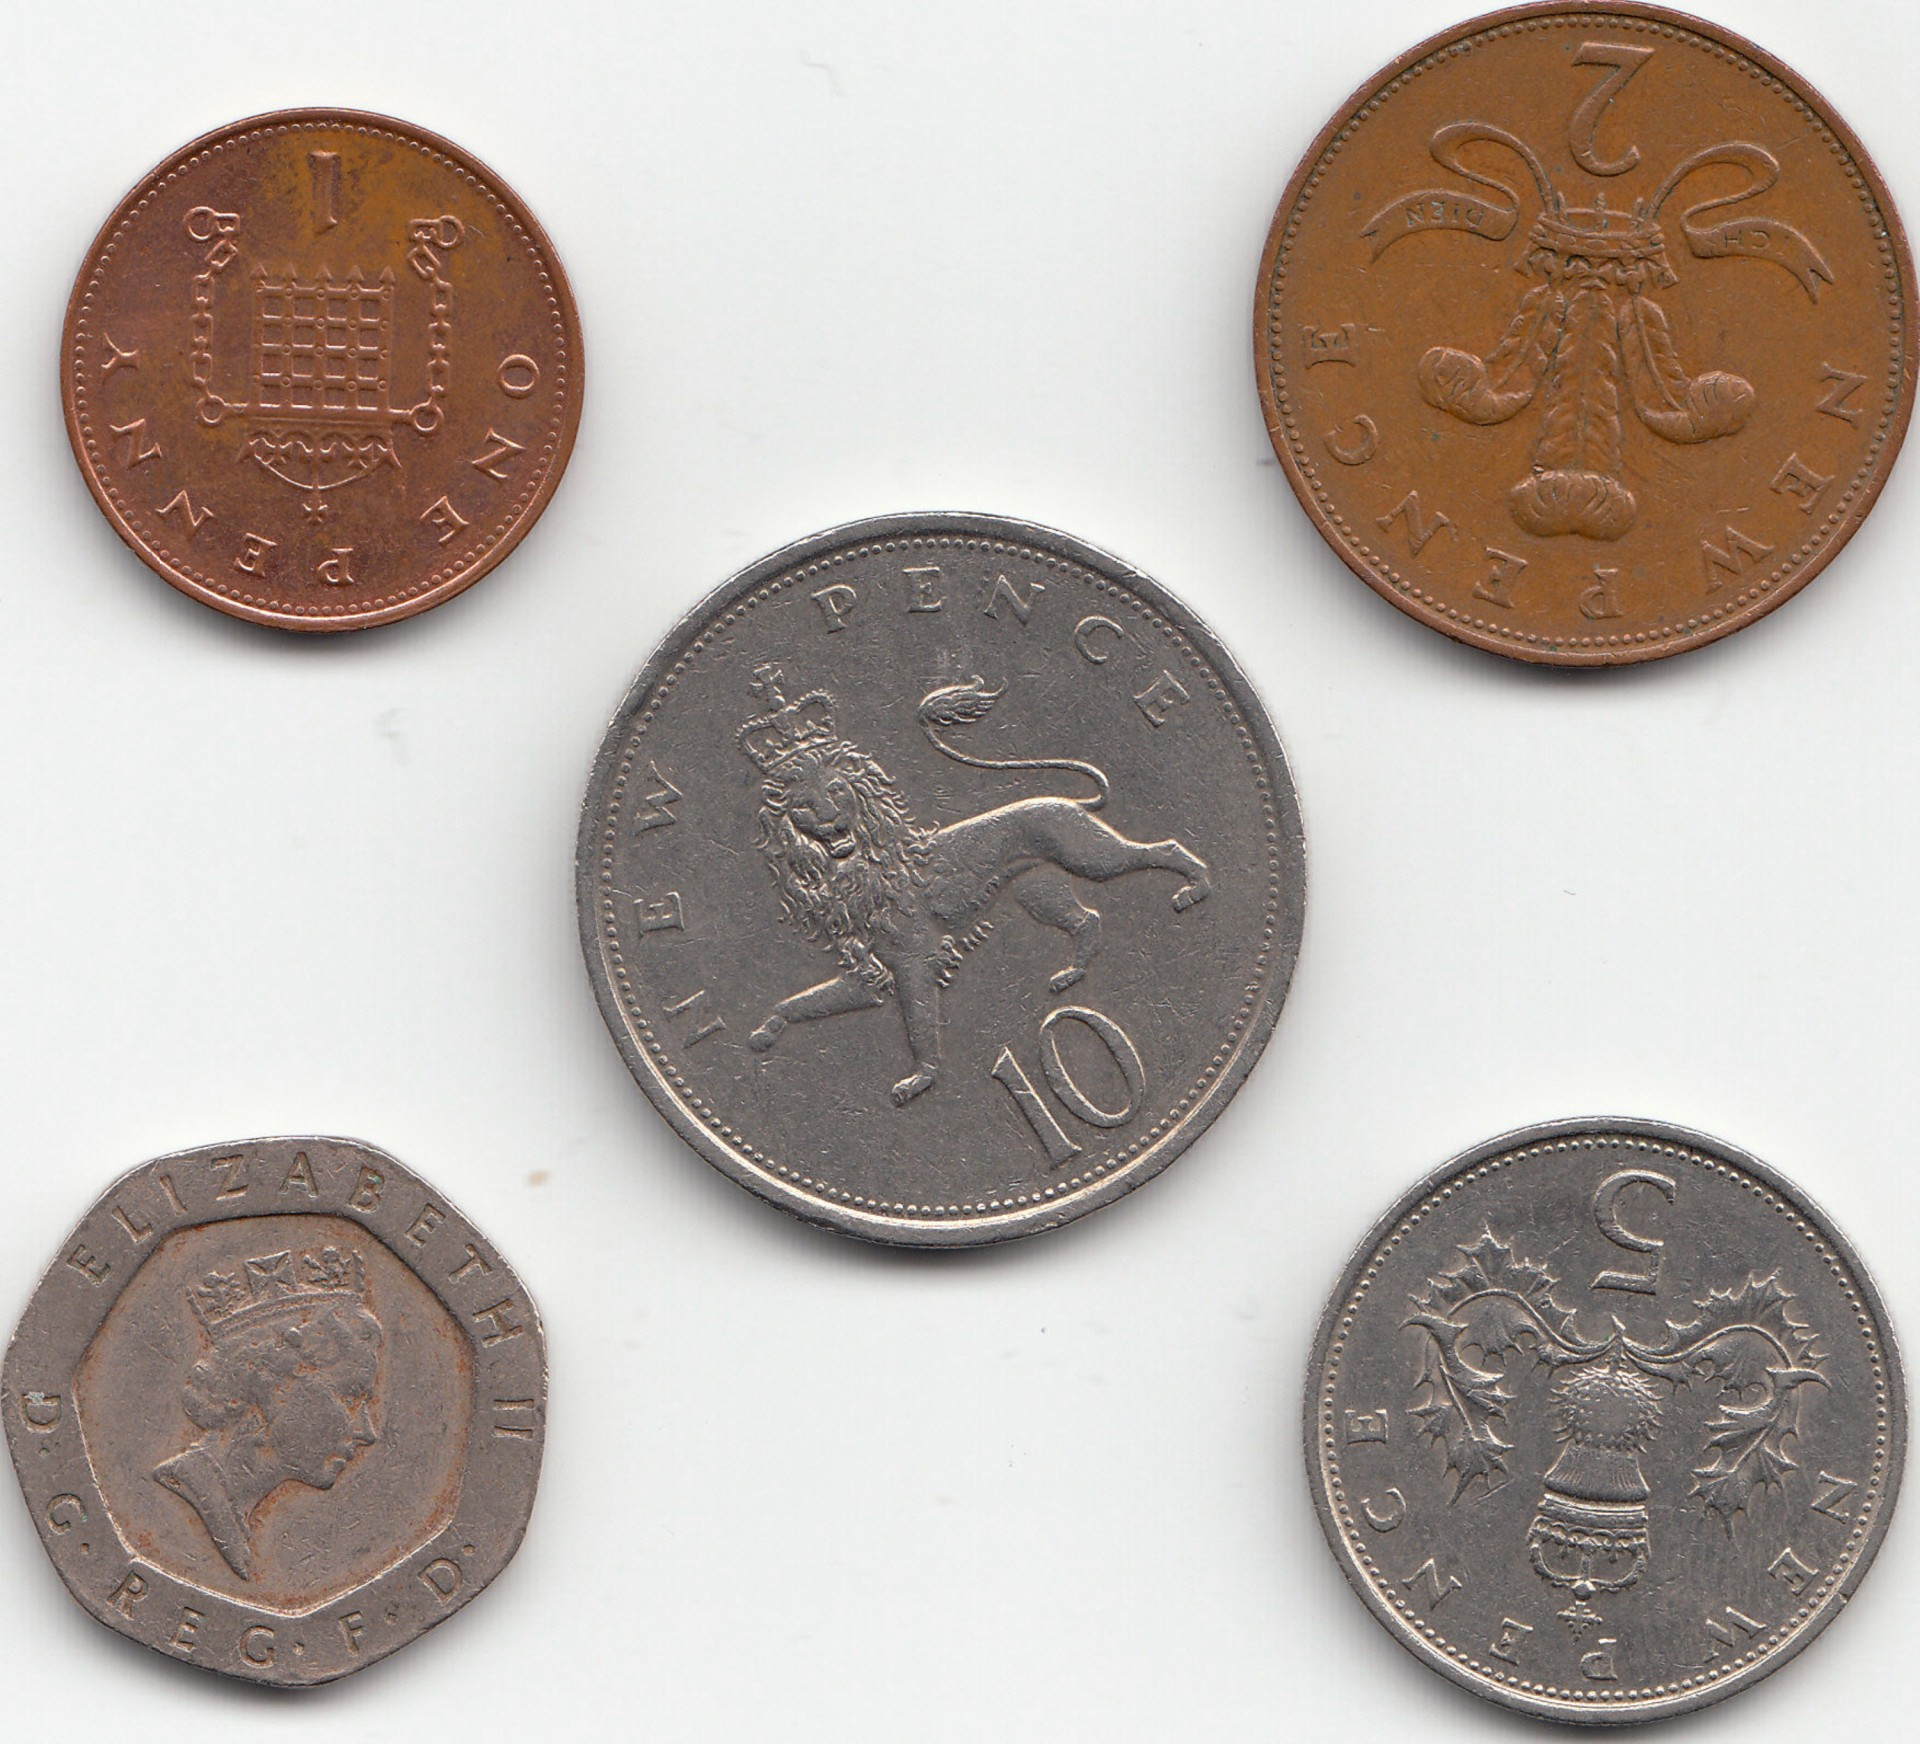 An image of a one, two, five, ten and twenty pence coin